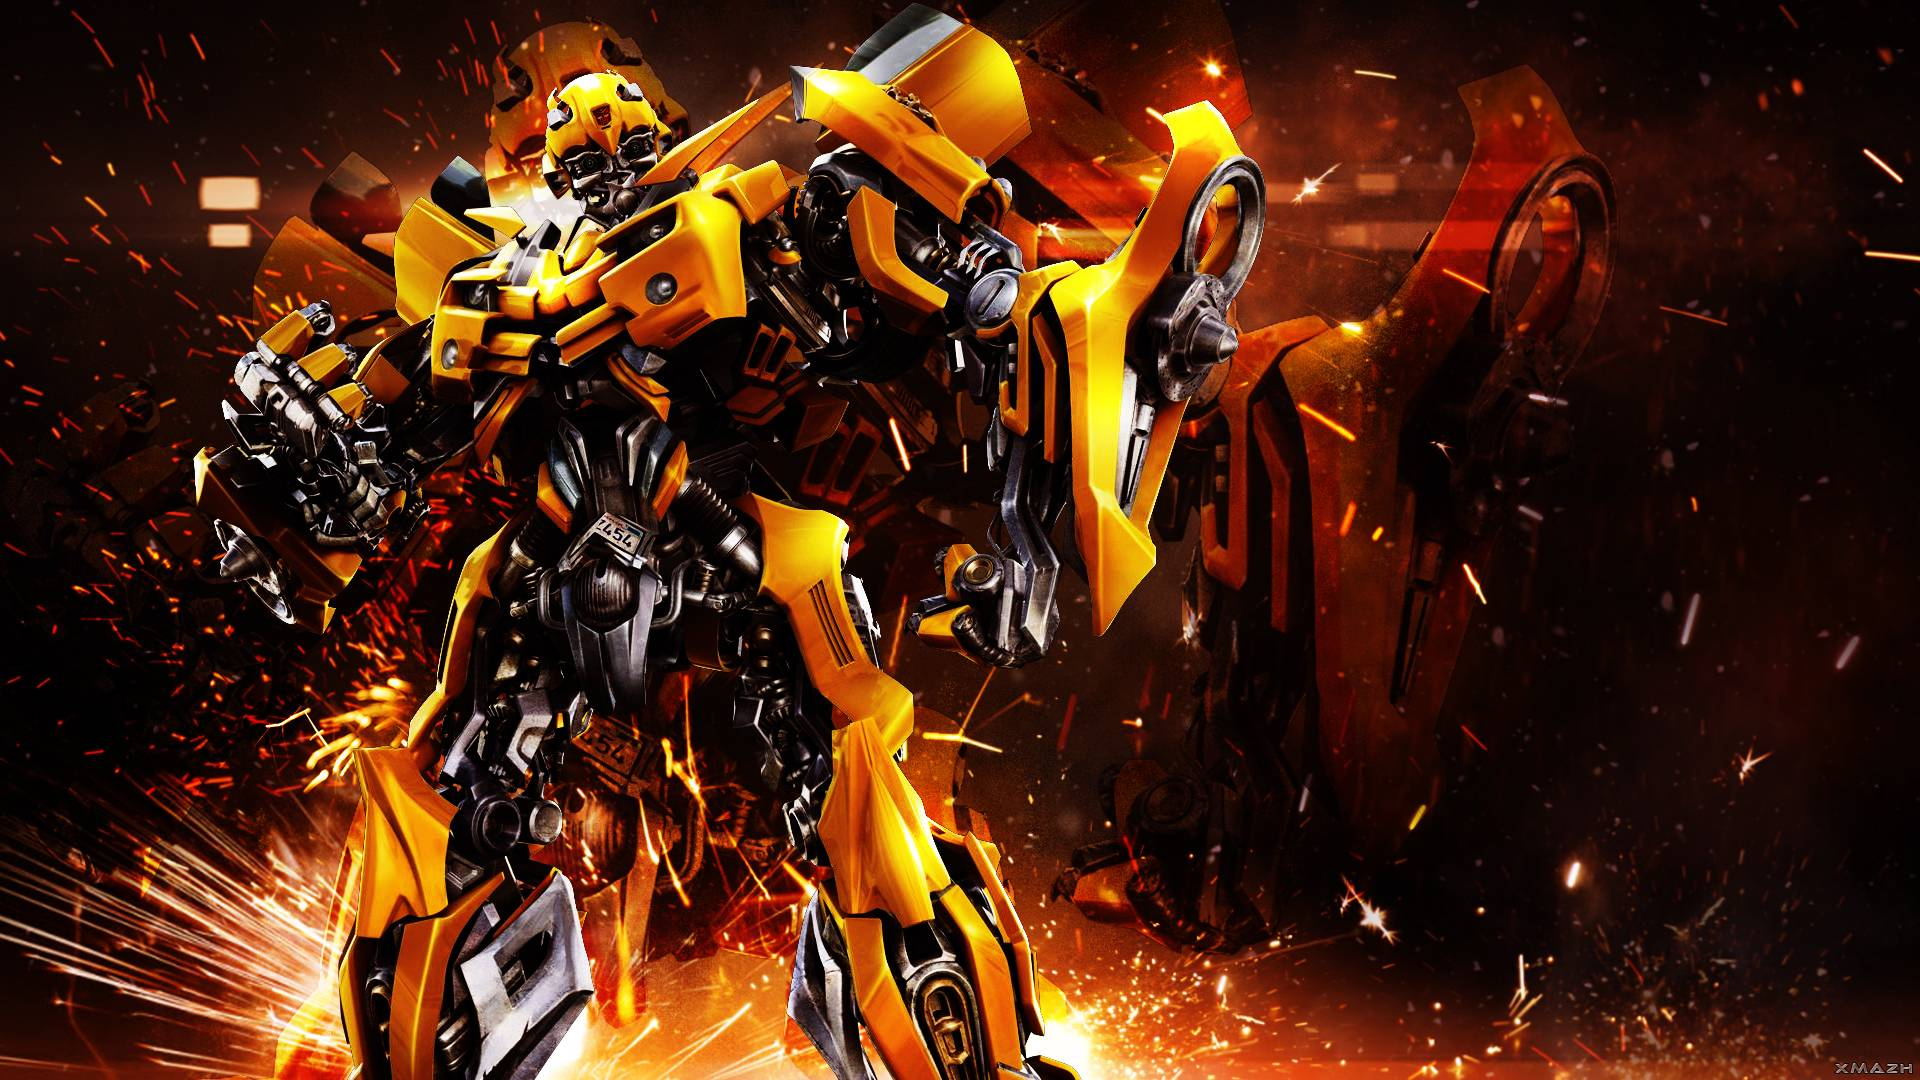 Transformers bumblebee wallpapers wallpaper cave - Transformers desktop backgrounds ...